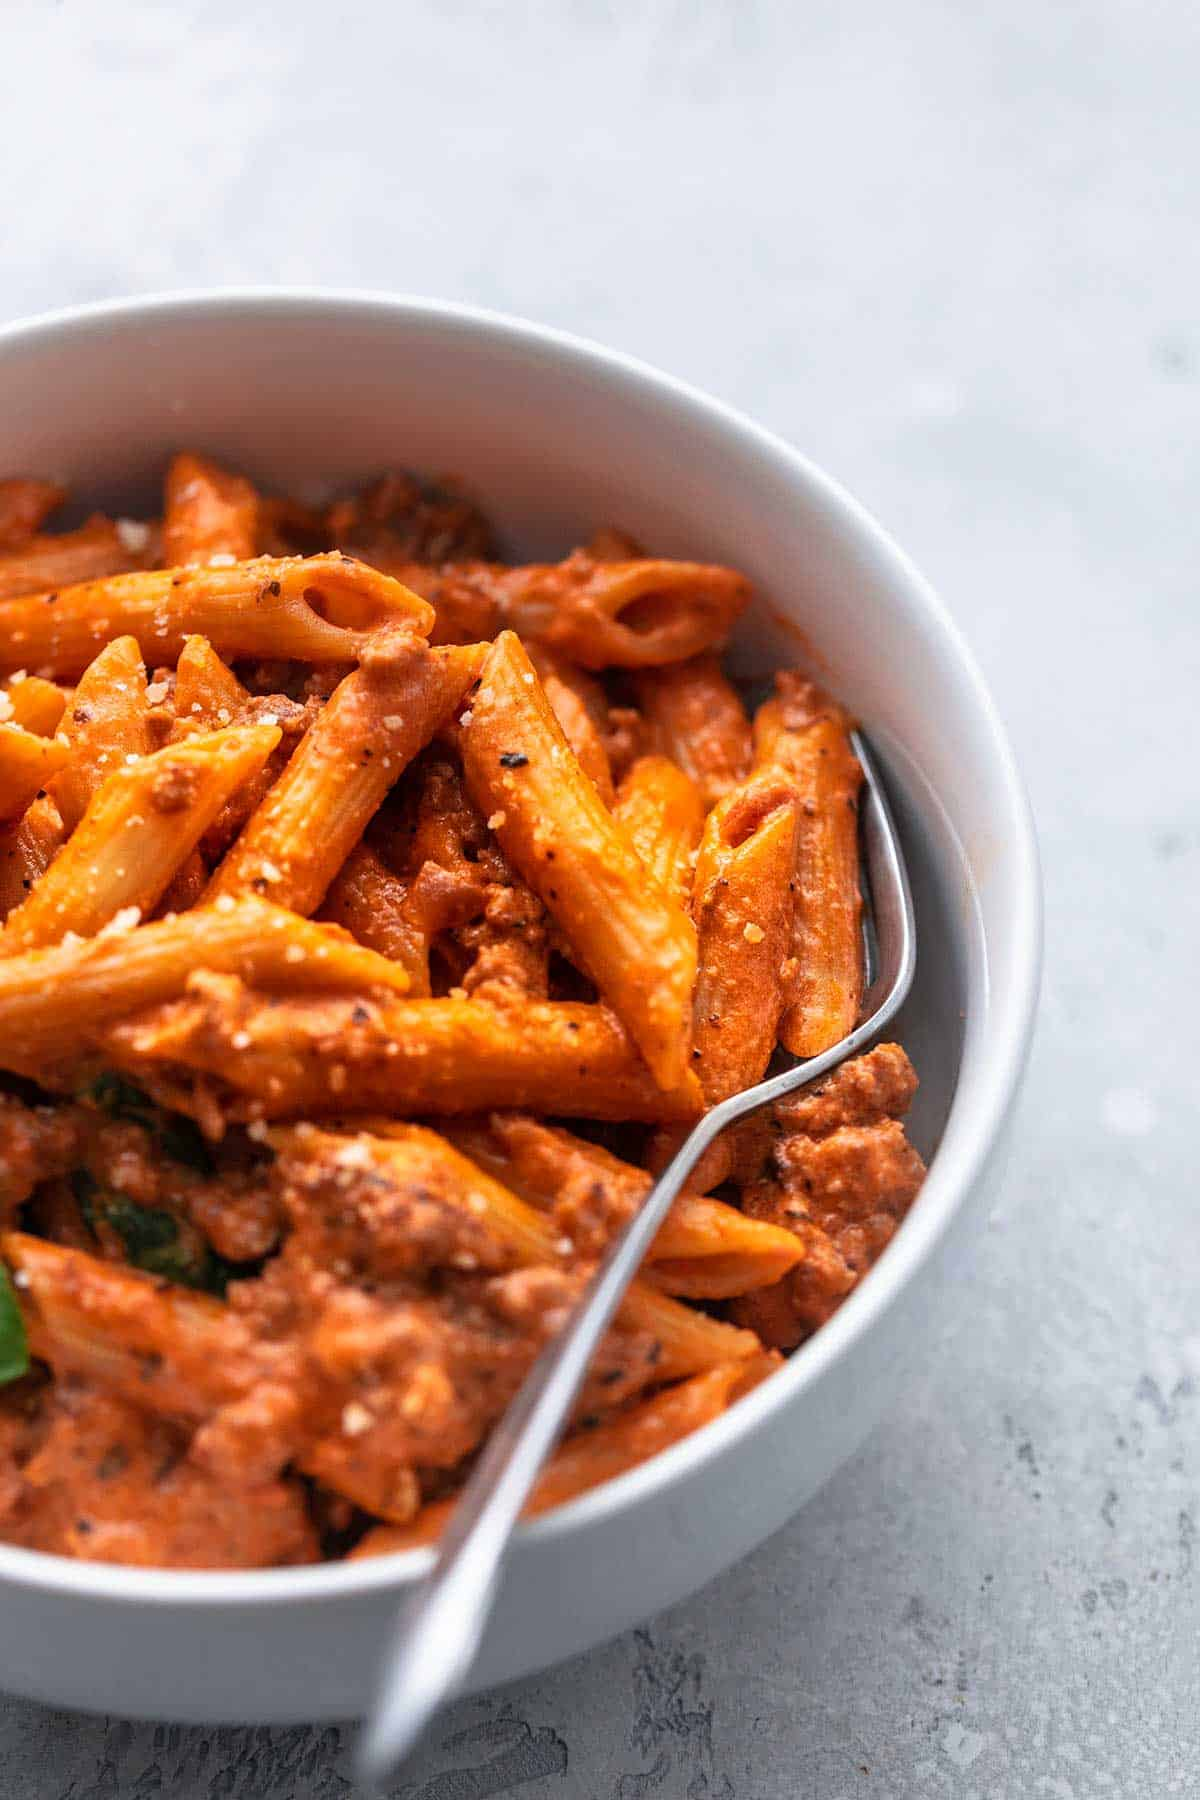 up close penne in tomato sauce in bowl with fork